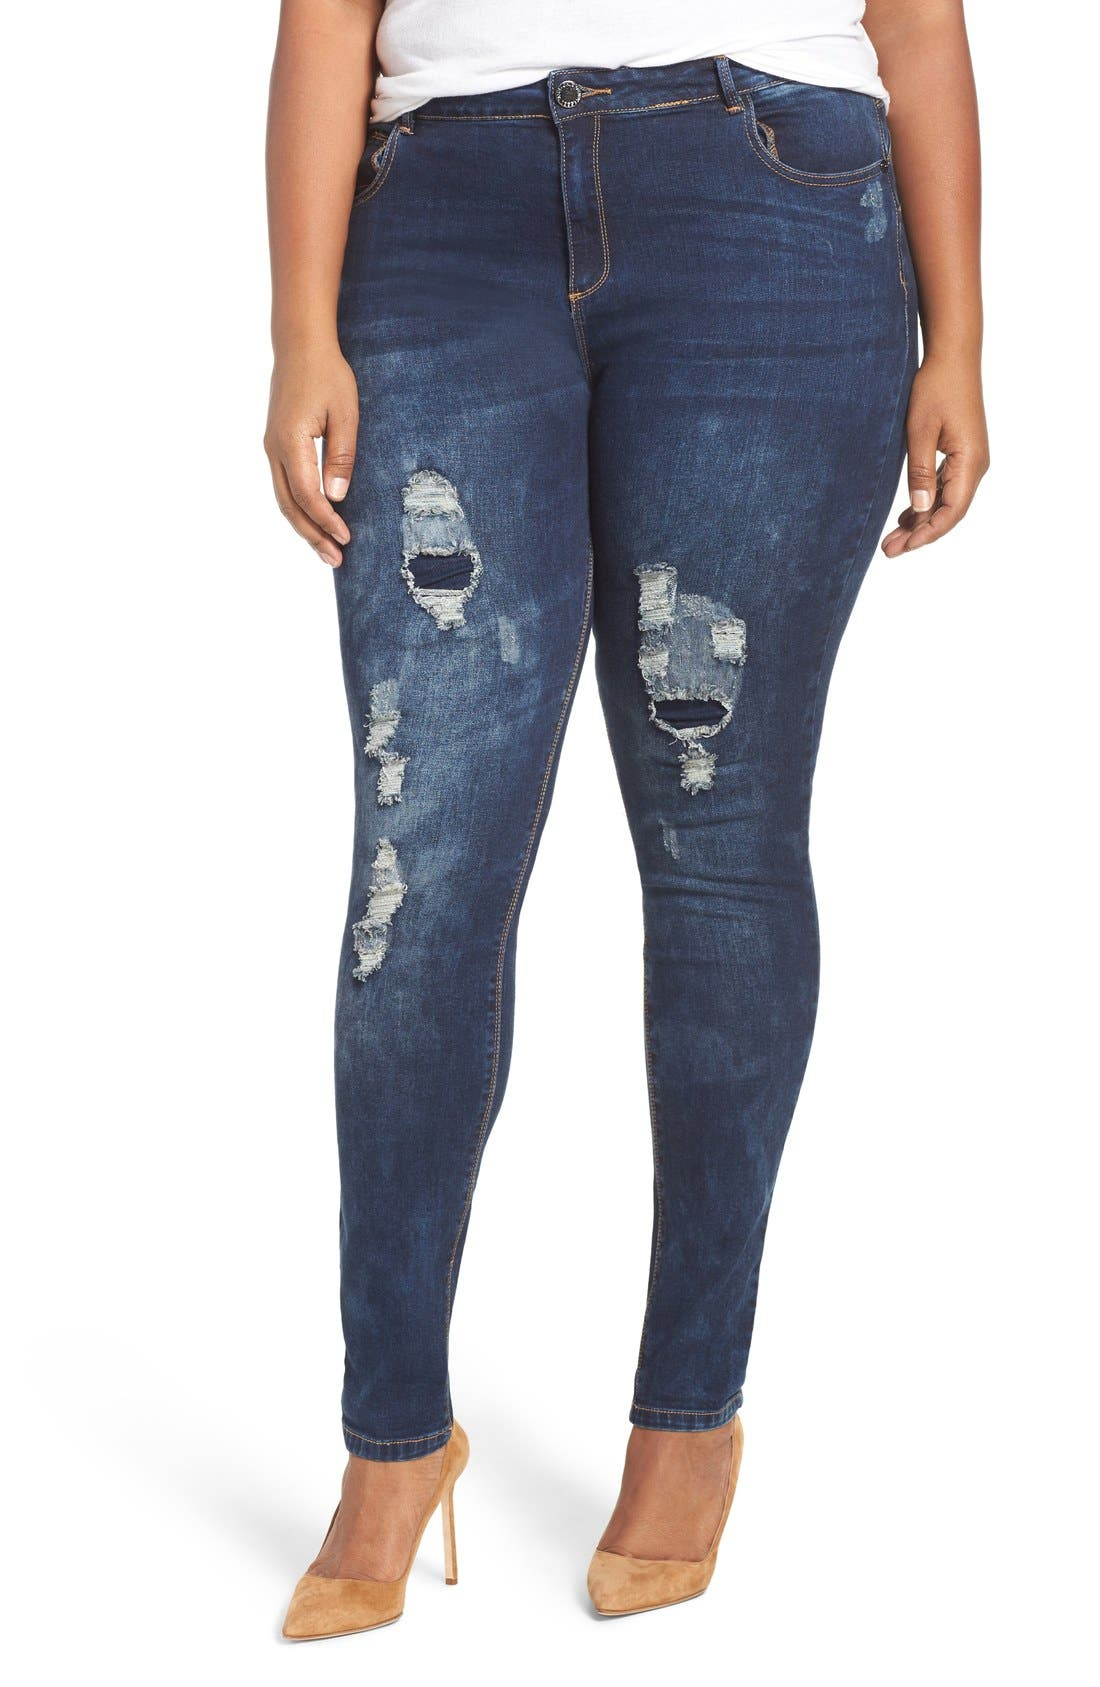 'Dismantle' Ripped Stretch Skinny Jeans,                             Main thumbnail 1, color,                             DARK DENIM